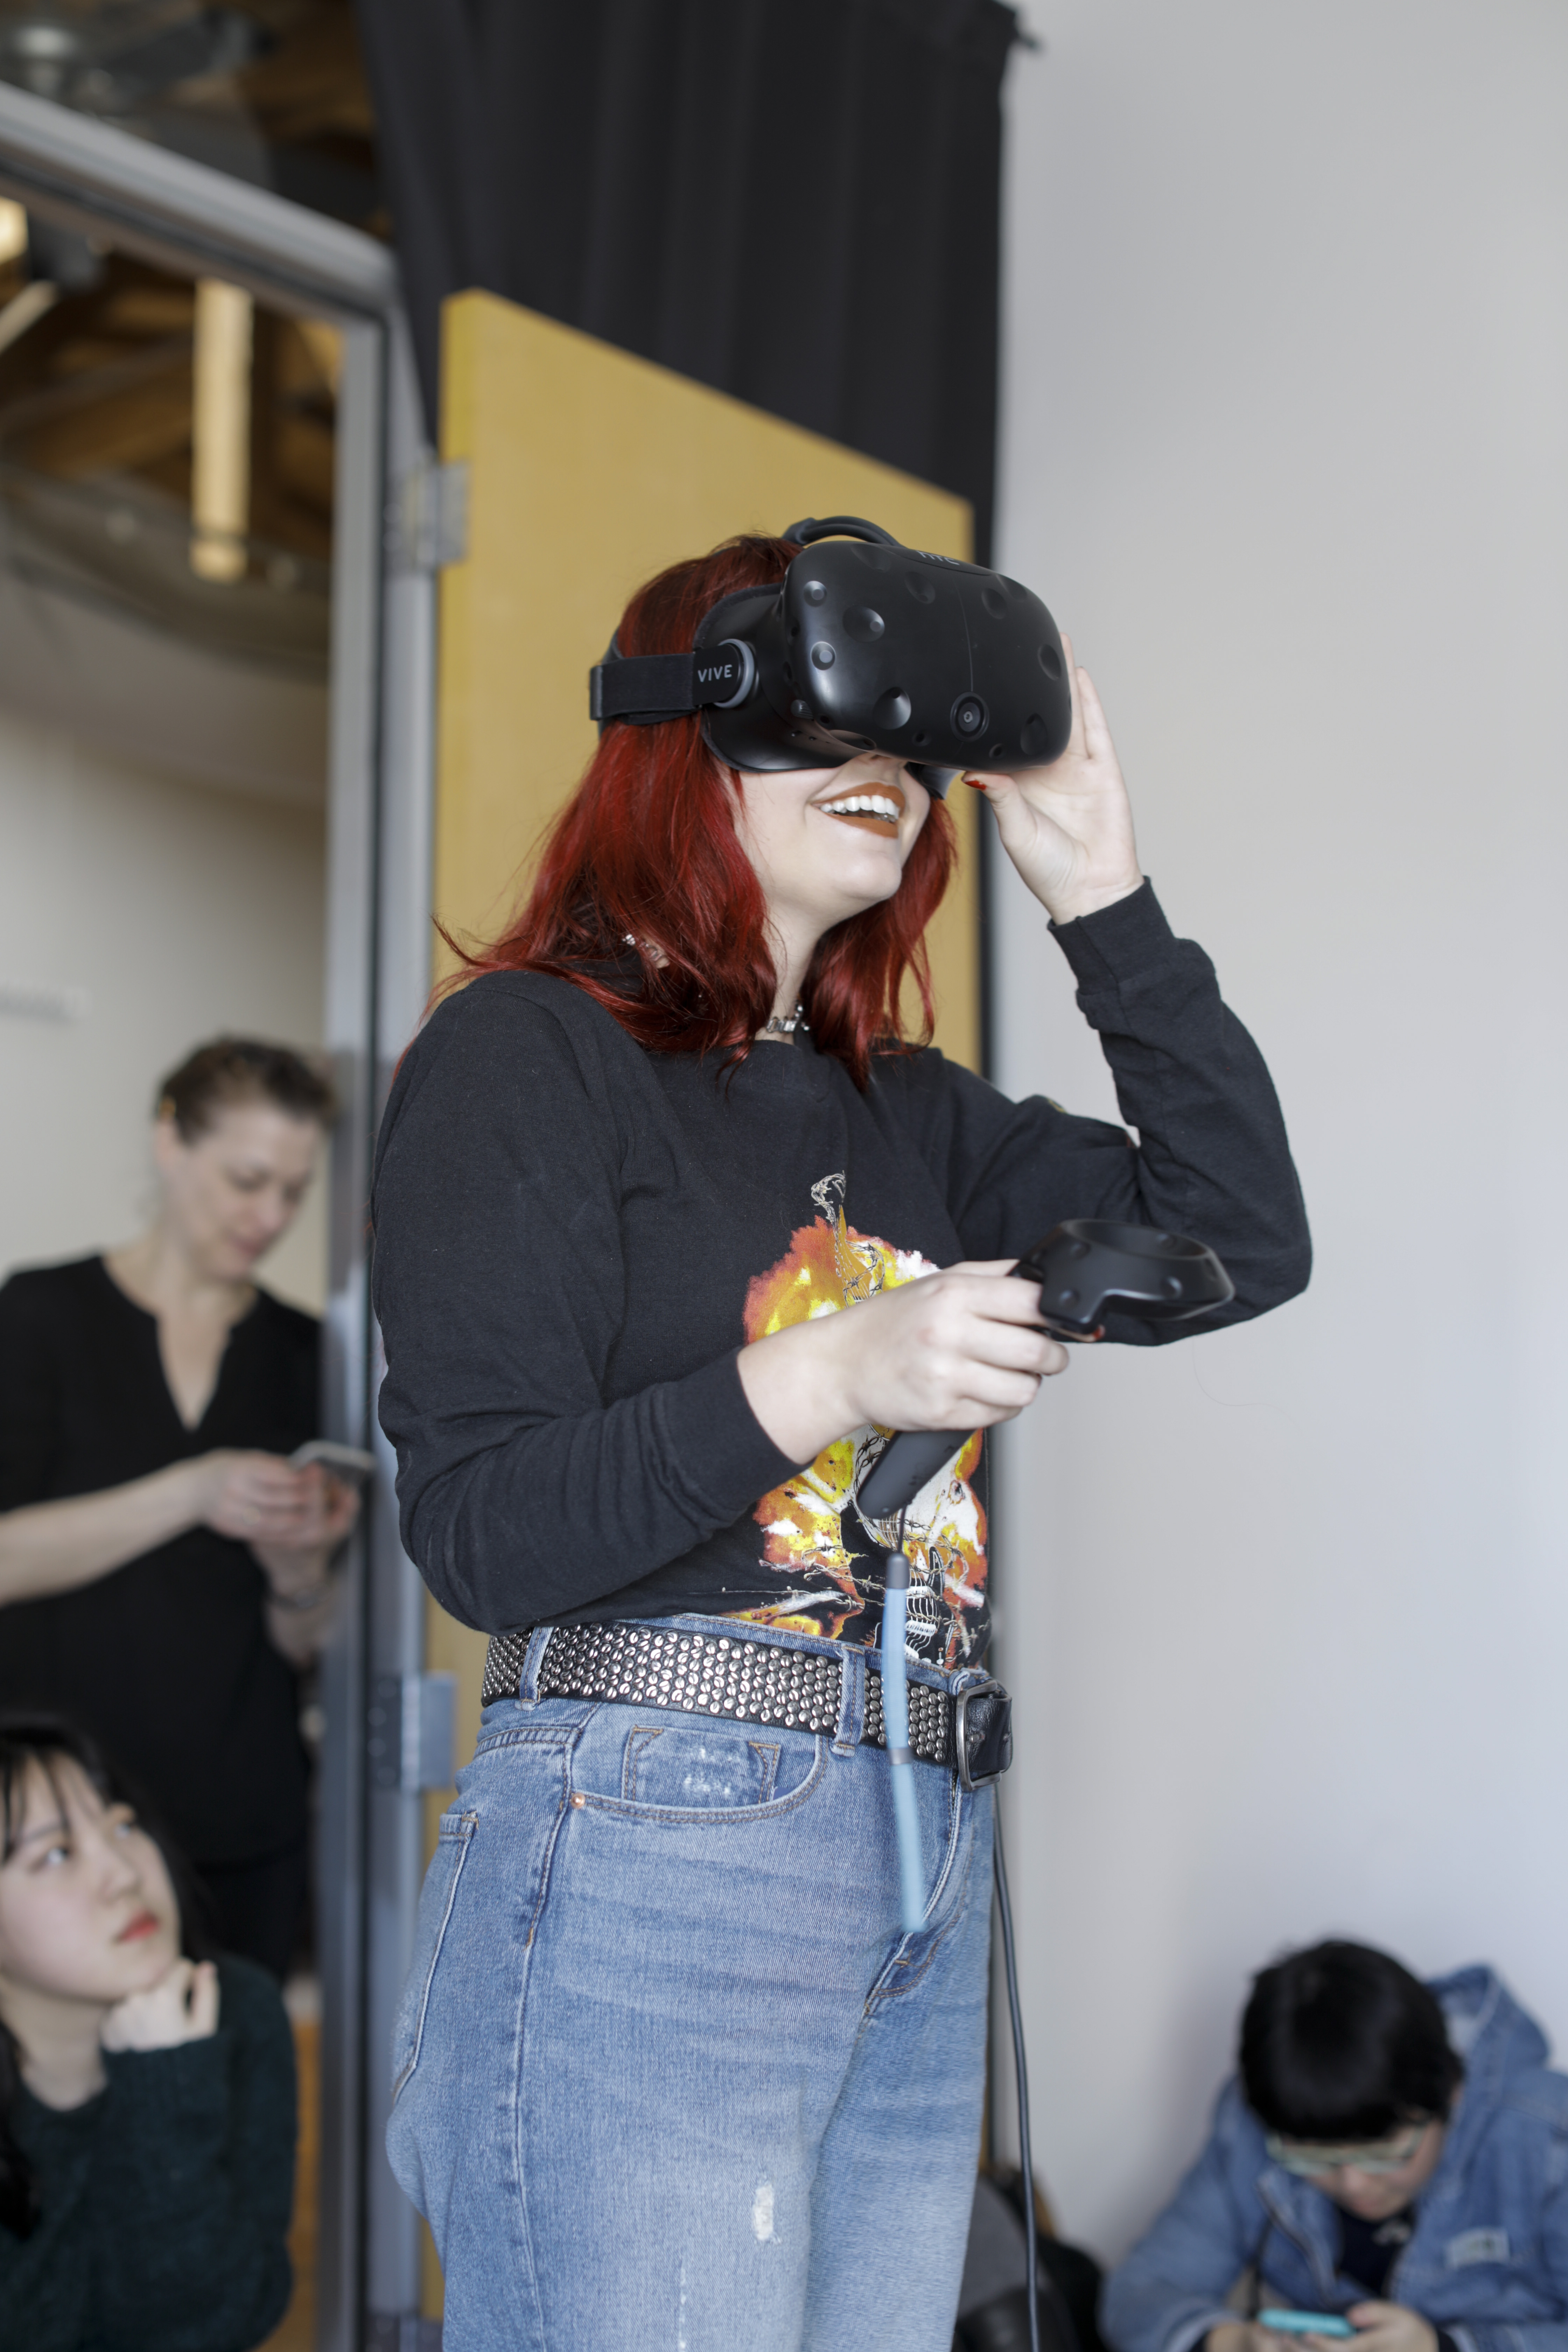 A red-haired woman with a studded belt using a HTC Vive virtual reality headset.